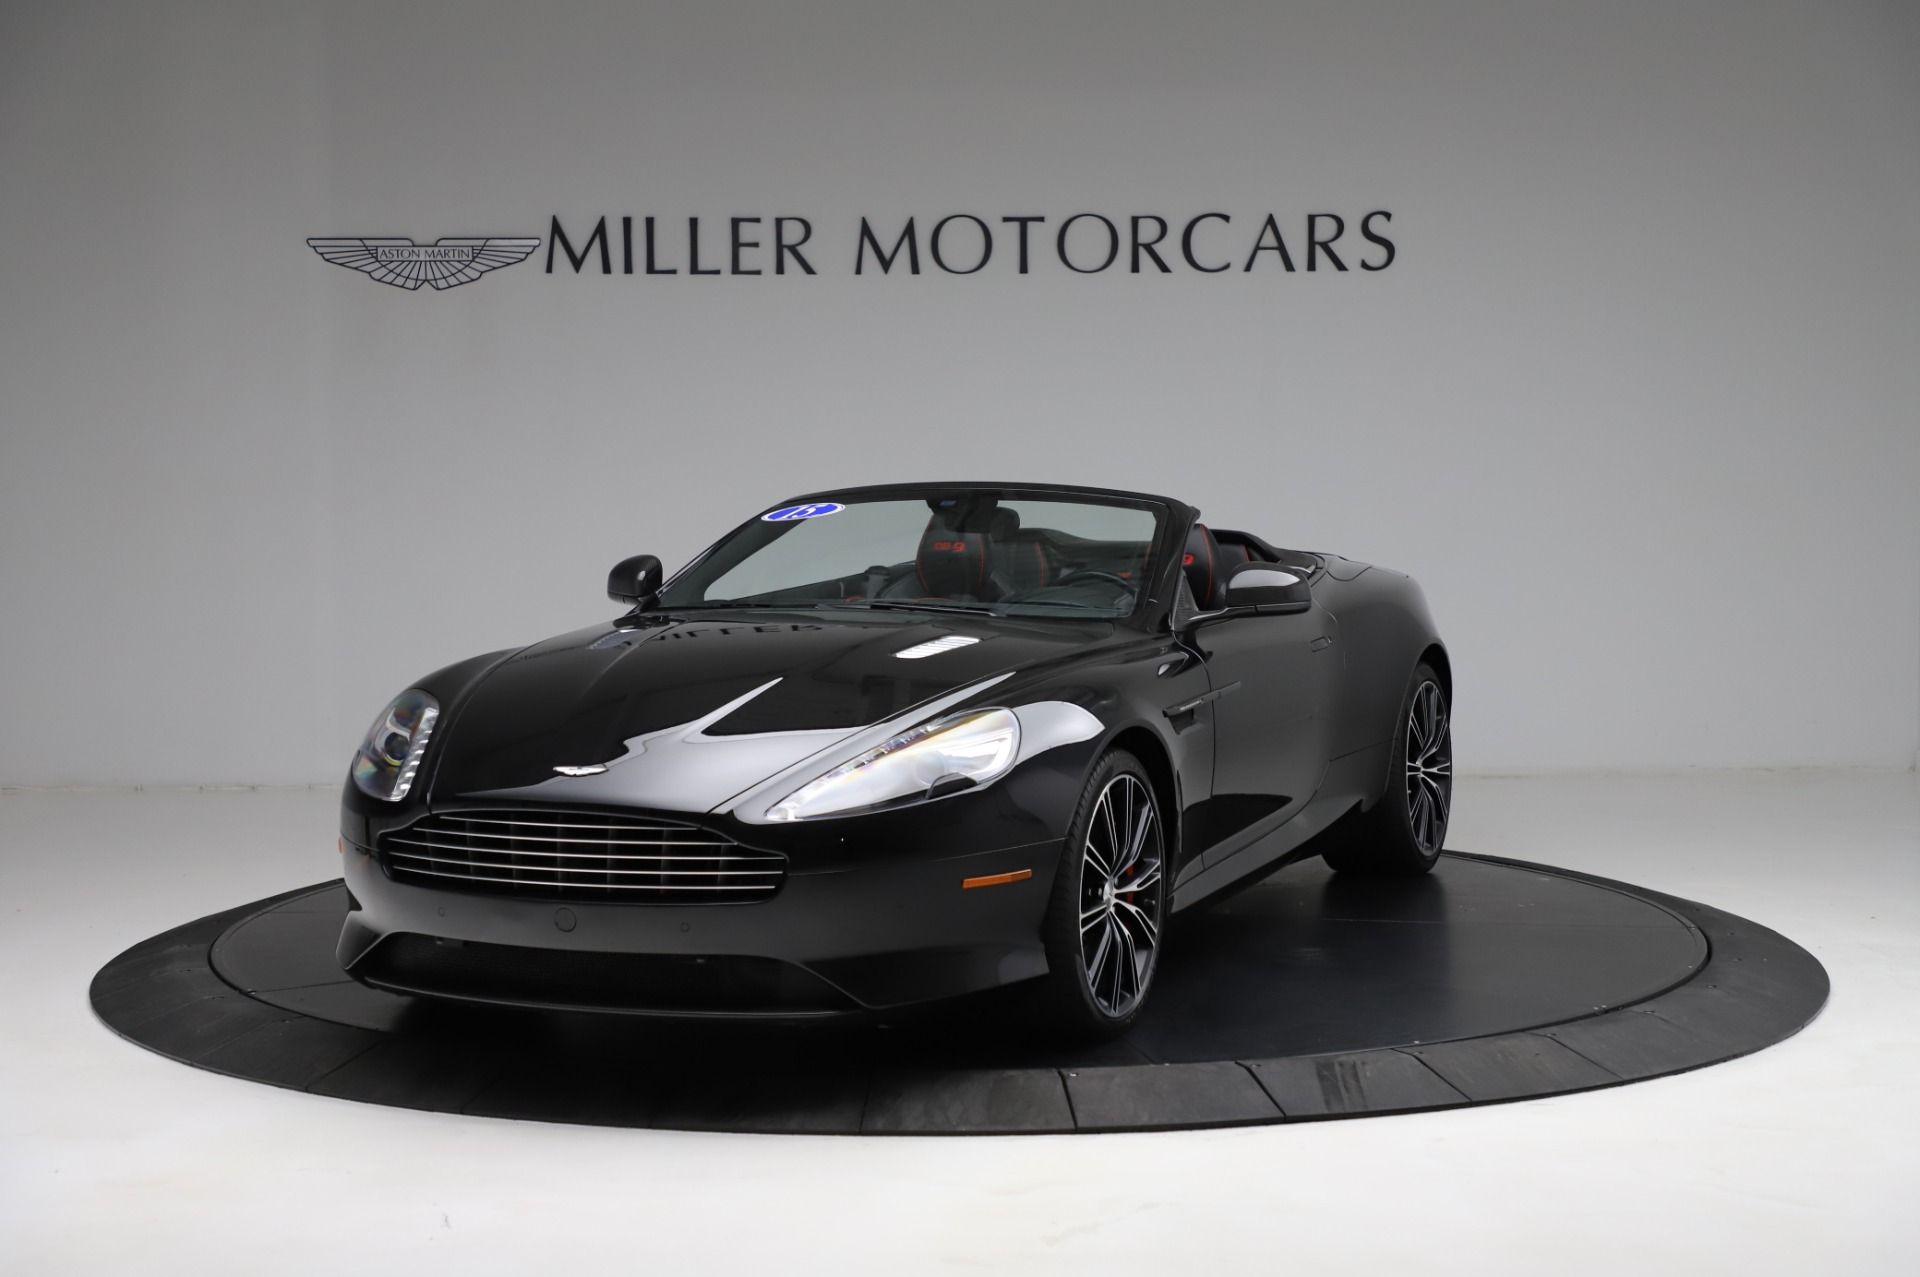 Used 2015 Aston Martin DB9 Convertible For Sale In Westport, CT 1919_p12